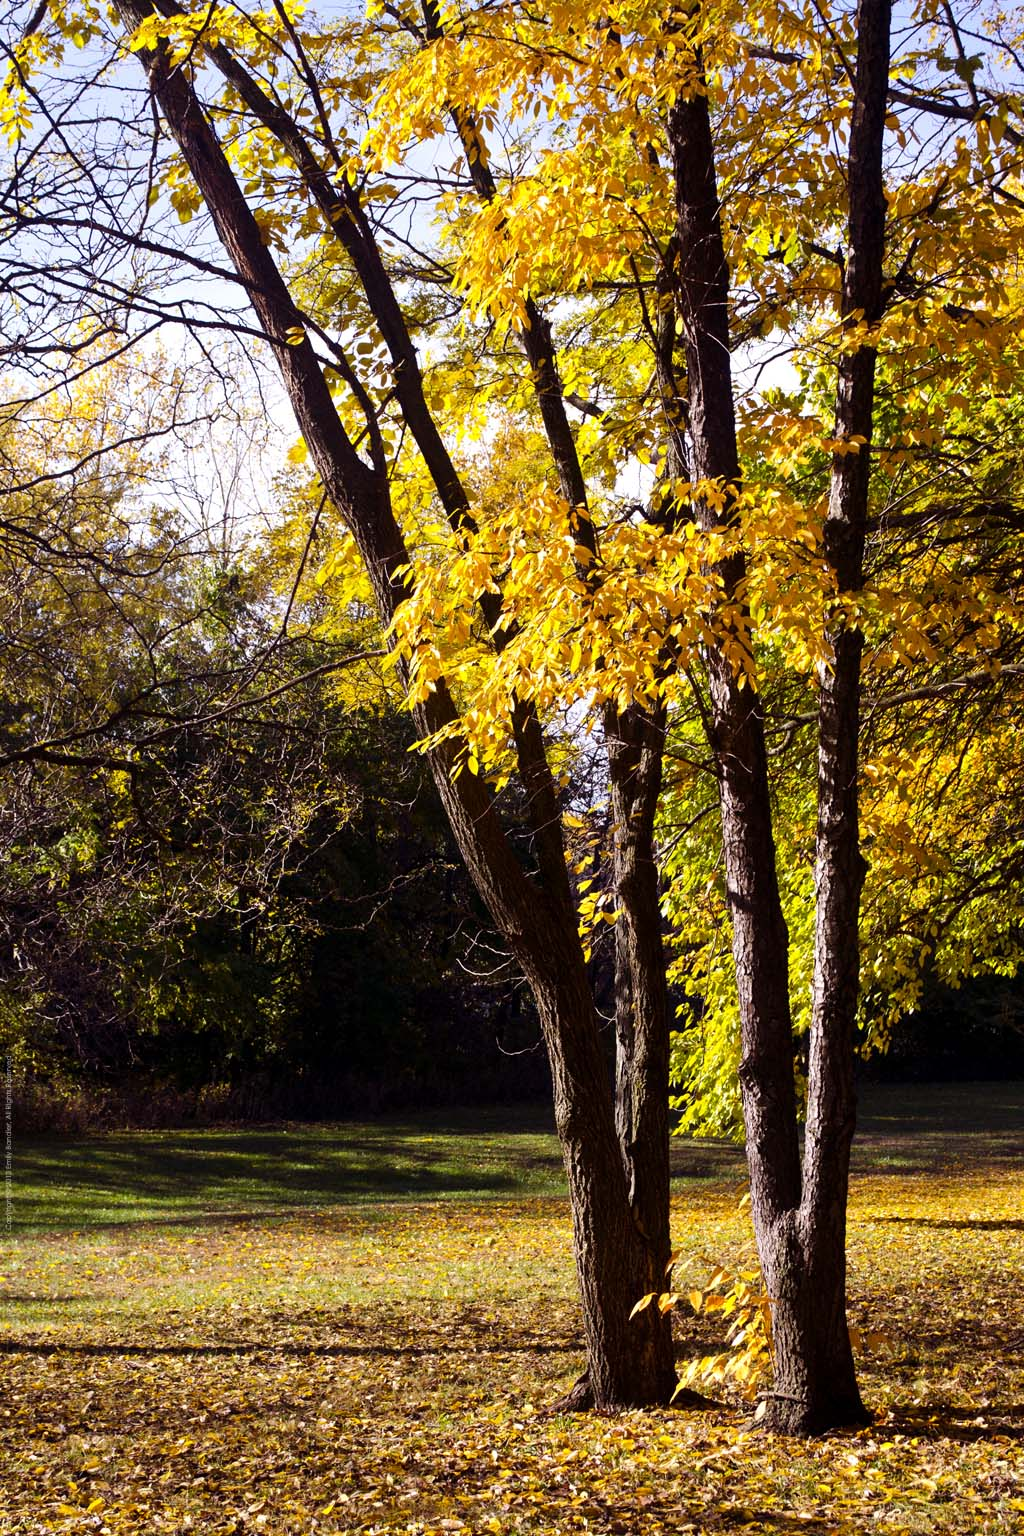 Two Trees Copyright © 2013 Emily C. Bandler, All Rights Reserved.